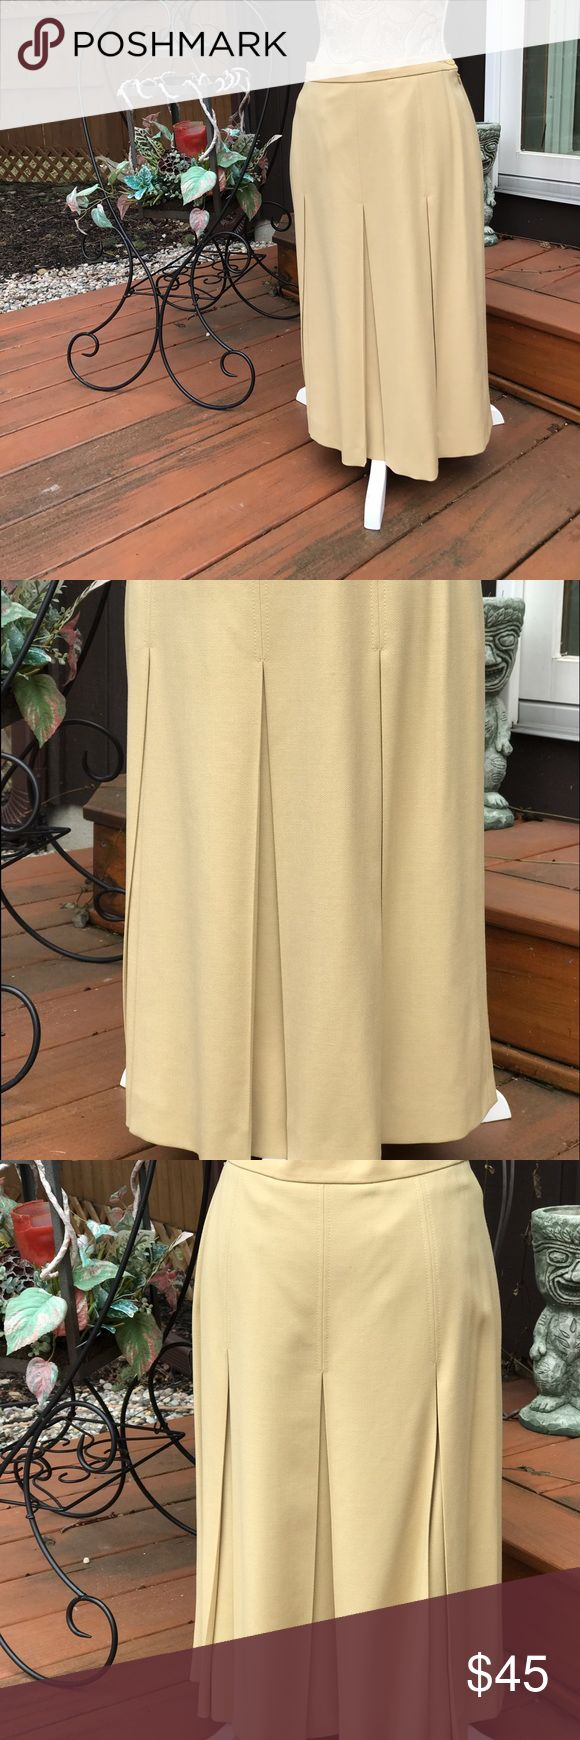 VTG LOUIS FERAUD PLEATED SKIRT LONG SIZE 8 VINTAGE LOUIS FERAUD LONG PLEATED LINED SKIRT SIZE 8.  THE SKIRT IS THE COLOR LIGHT BROWN/BEIGE AND A LITTLE HEAVIER. GOOD CONDITION AND DOES HAVE VERY FEW SMALL STAINS IN 1 AREA (PICTURES).  THIS IS MADE OF 98% WOOL 2% SPANDEX.  THE LINING IS 100% RAYON. LOUIS FERAUD Skirts